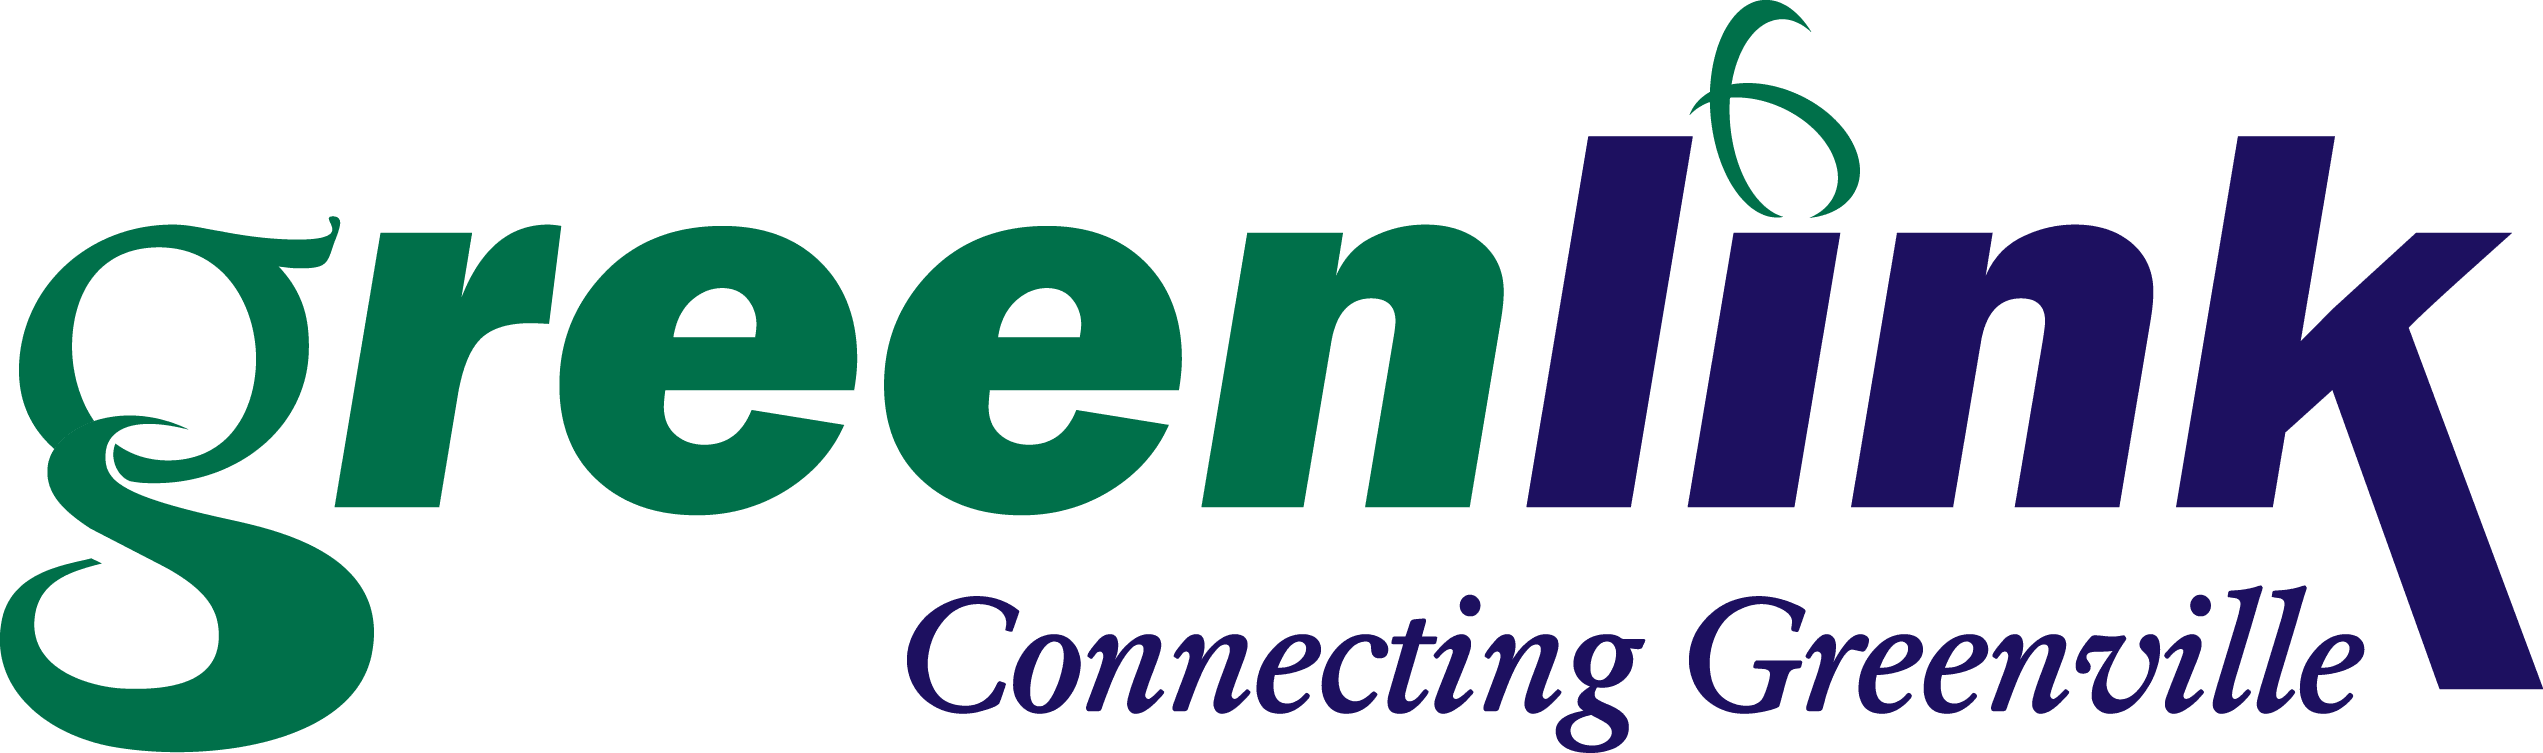 Greenlink: Connecting Greenville